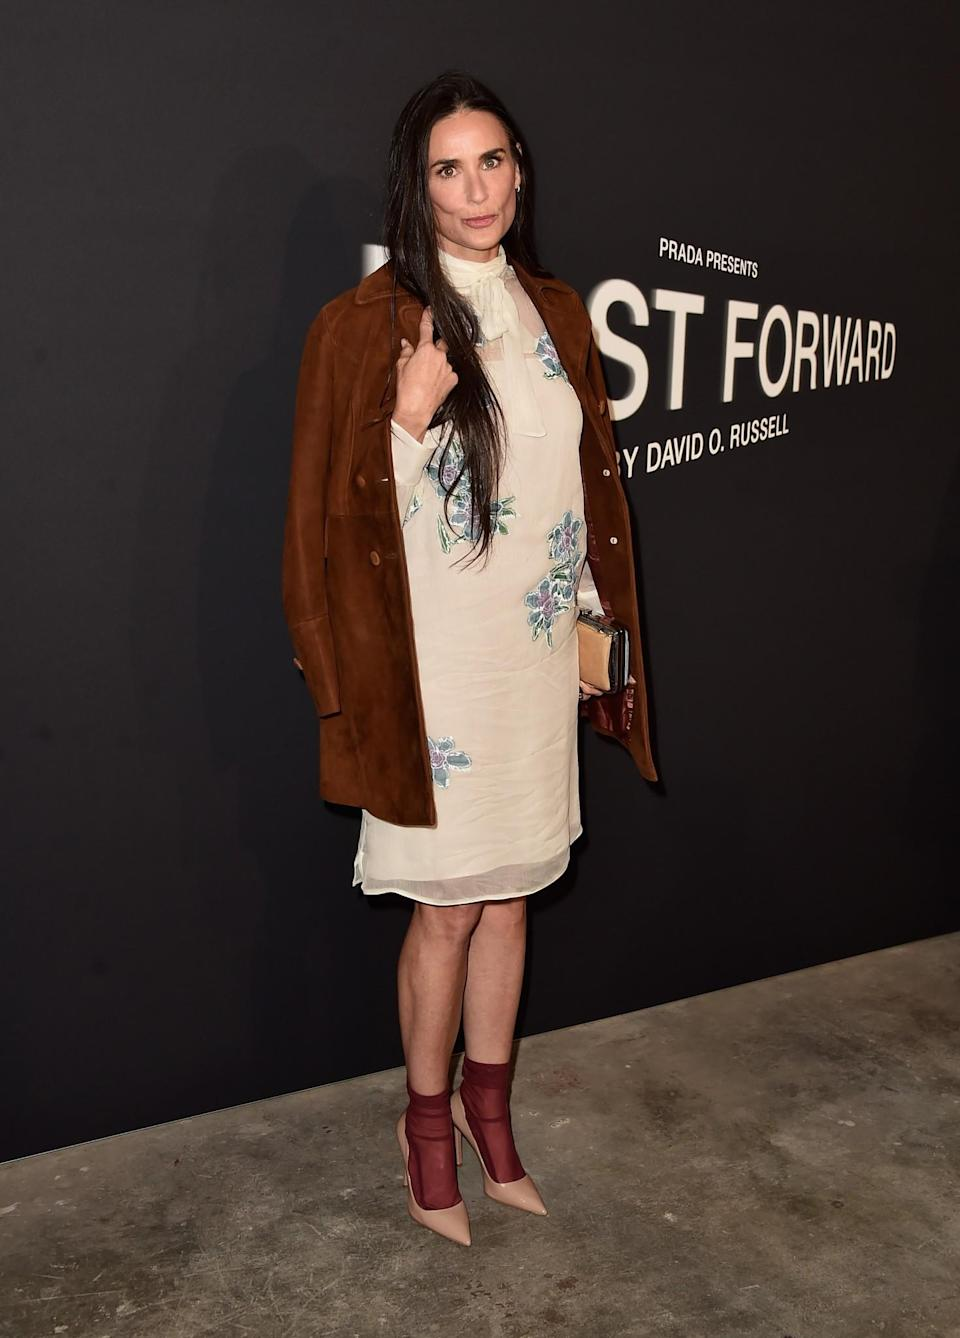 <p>Demi's mish-mash ensemble consisting of a nude high-necked dress and brown suede coat totally worked. The sheer socks were a nice touch too. <i>[Photo: Getty]</i> </p>